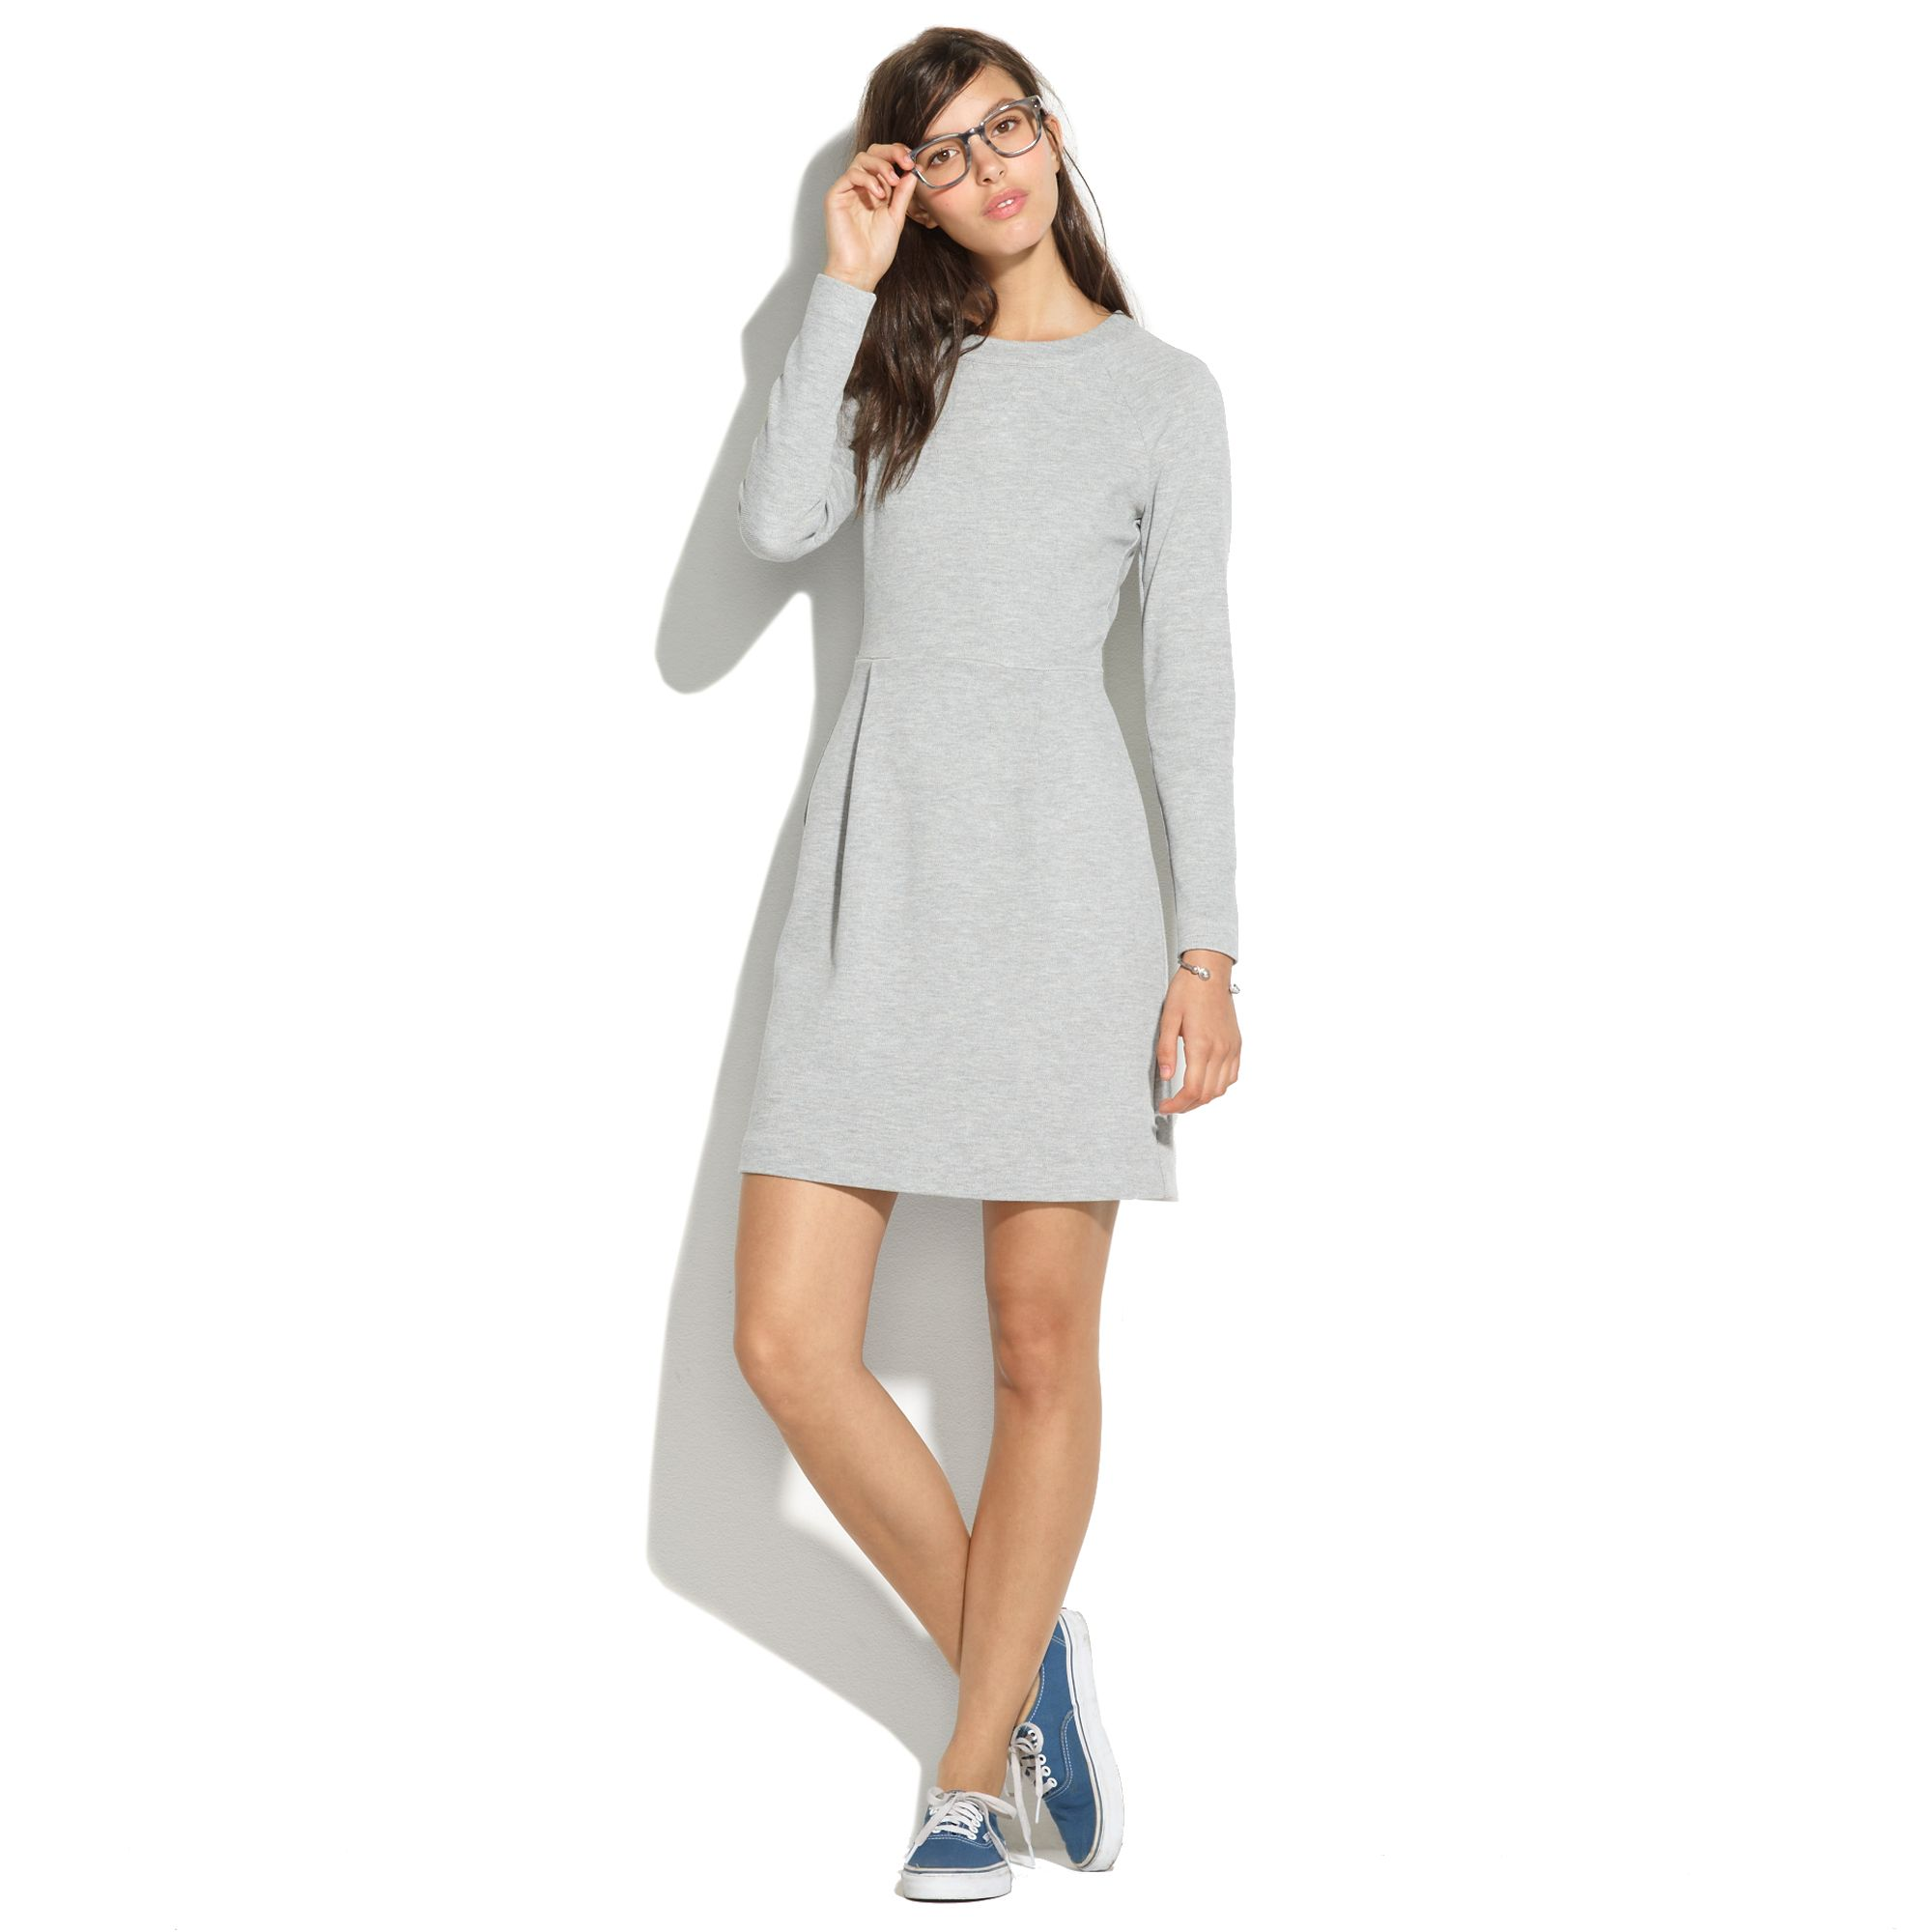 Lyst - Madewell Longsleeve Sweatshirt Dress In Gray